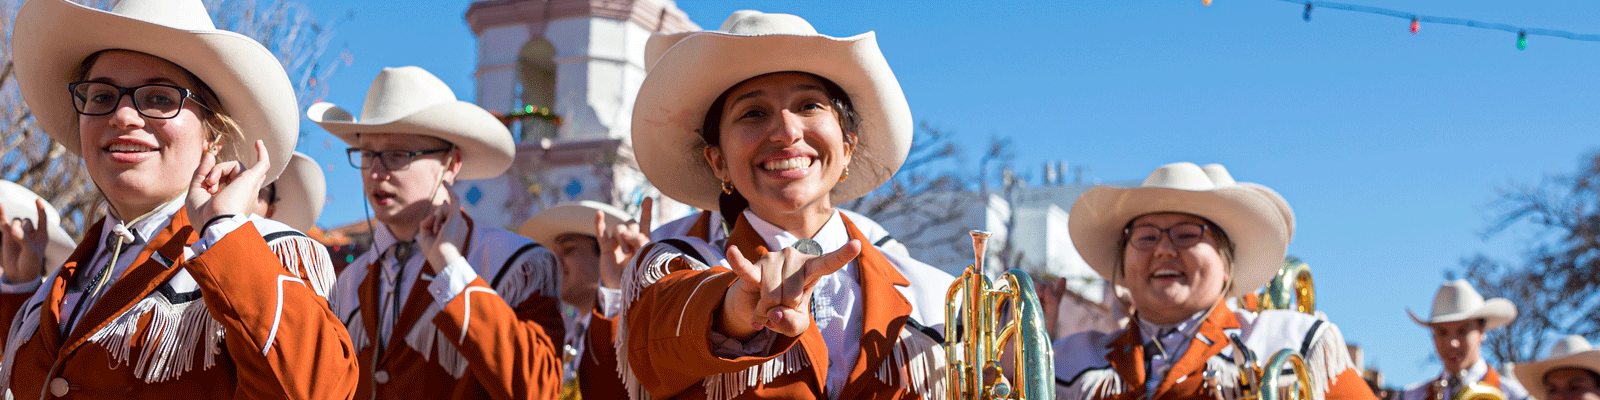 Join the Longhorn Band!